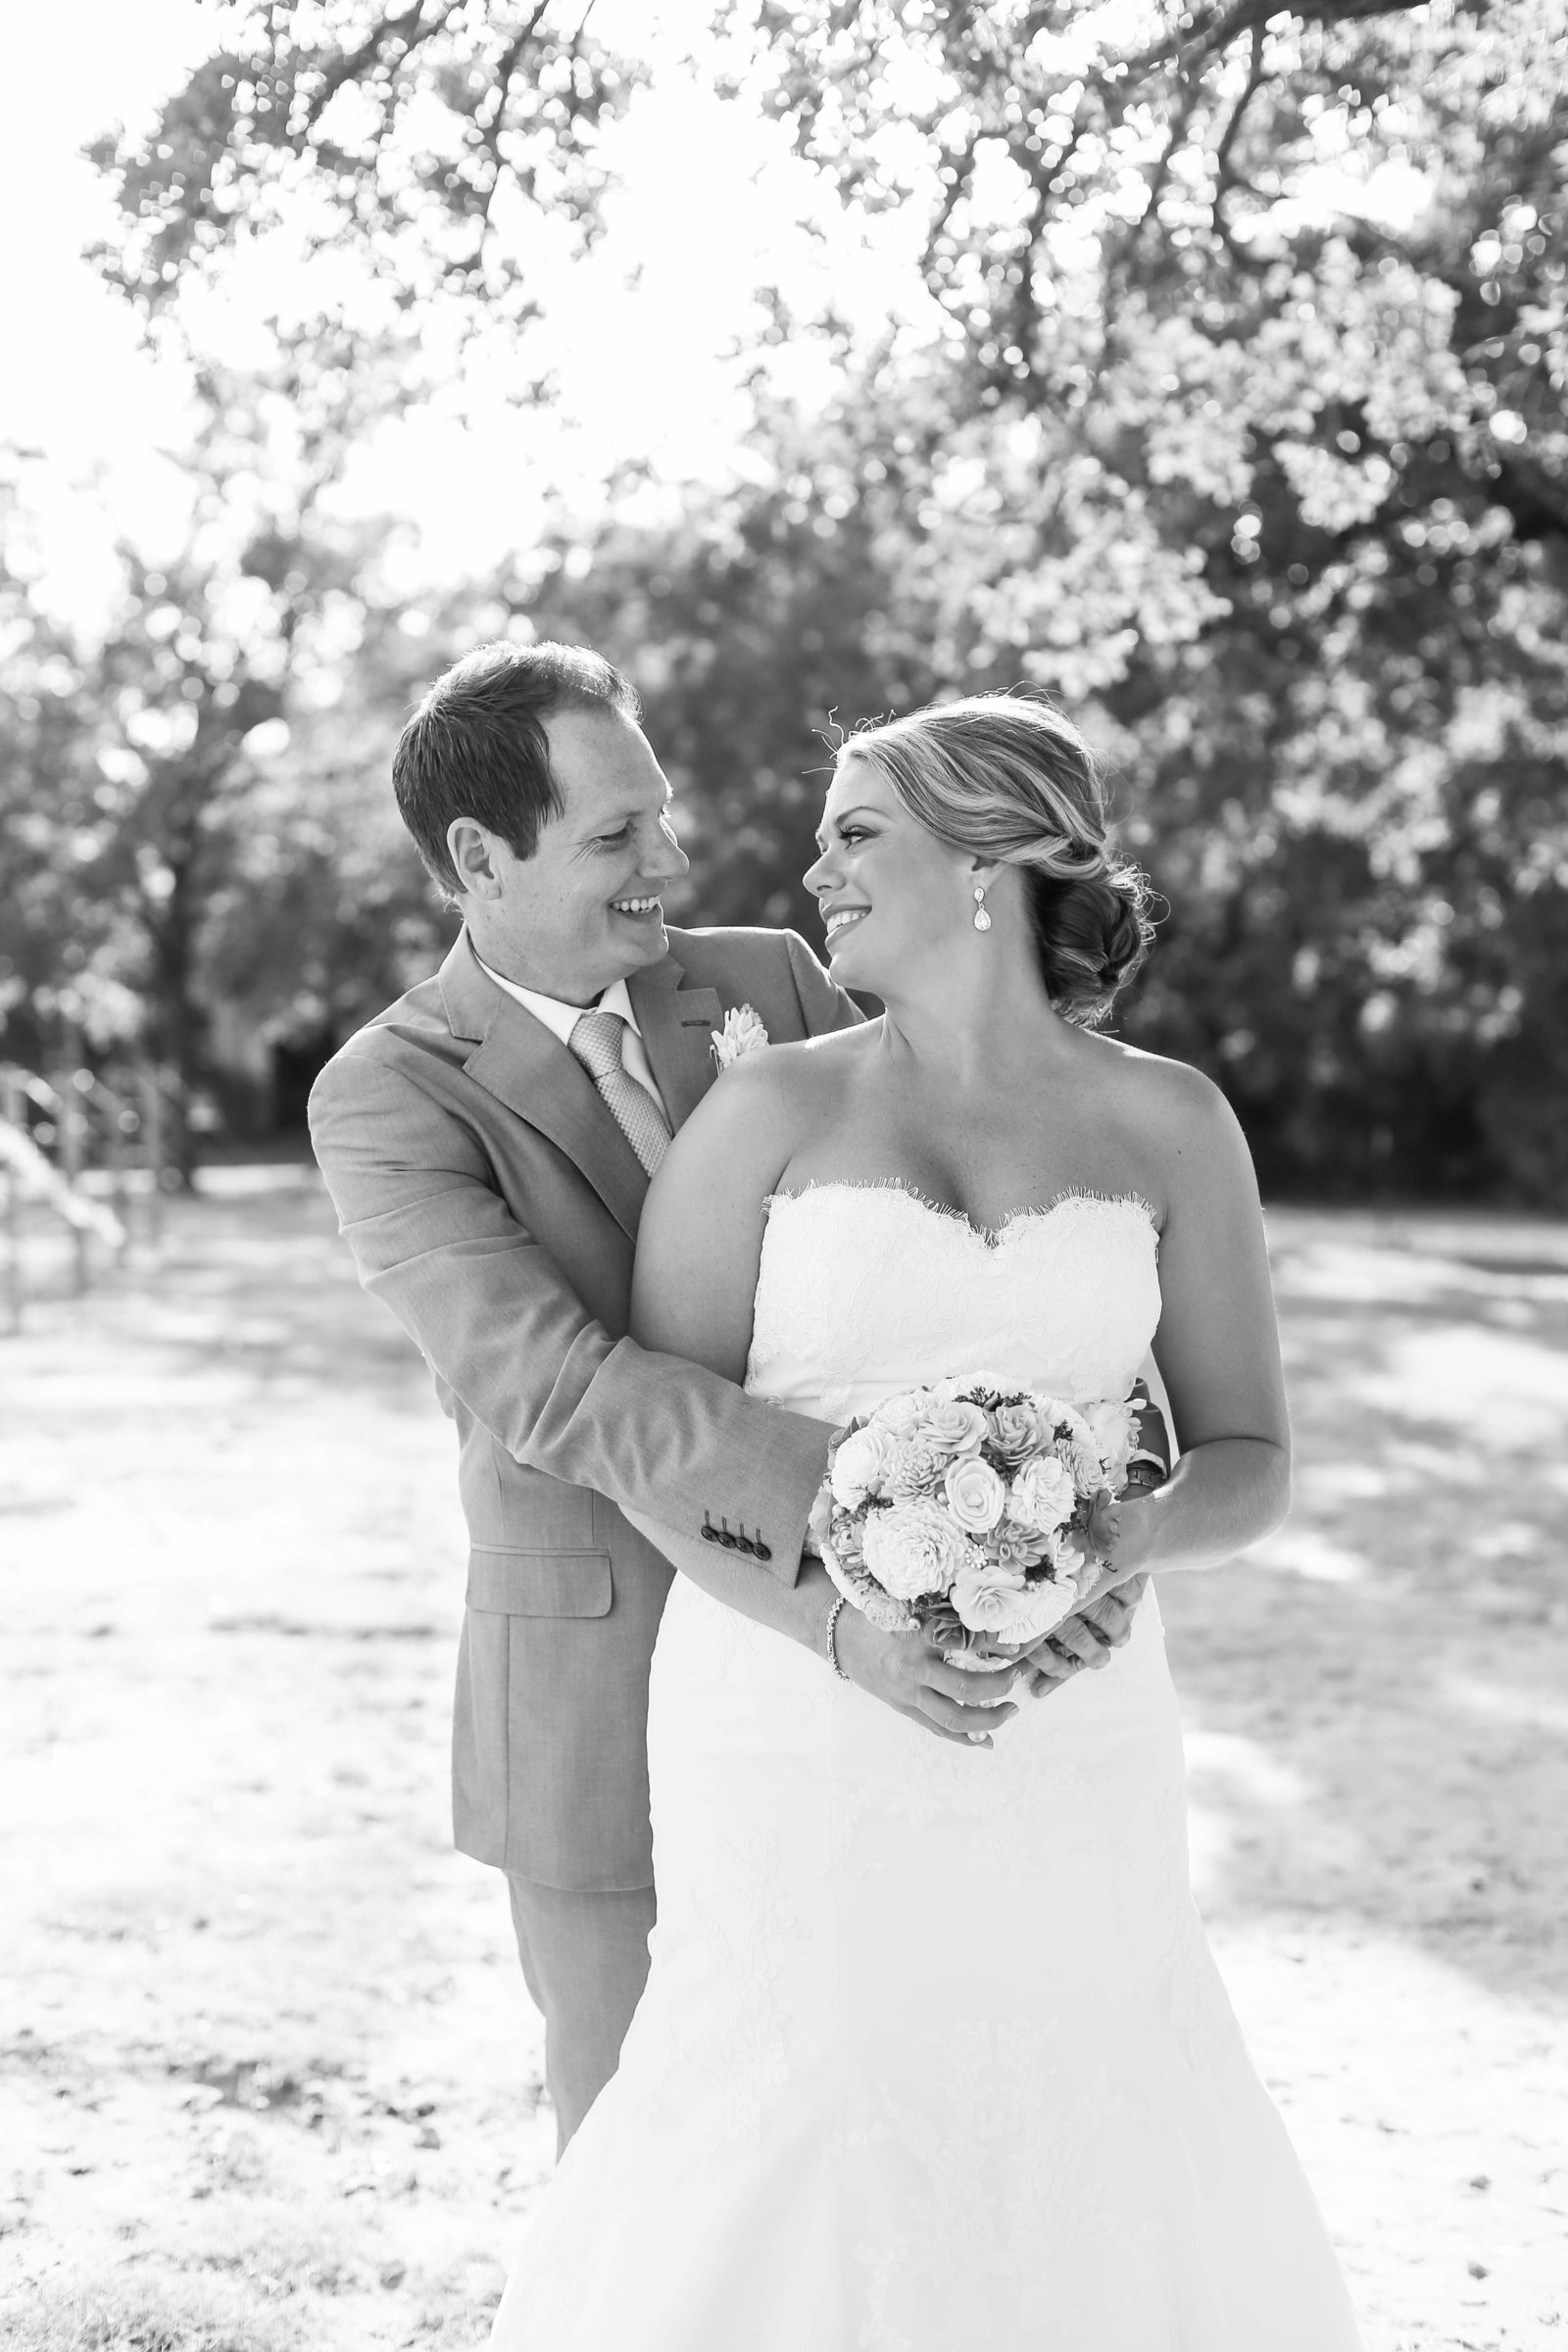 Fort Worth wedding Photographer | Kim Hayes Photography | www.kimhayesphotos.com